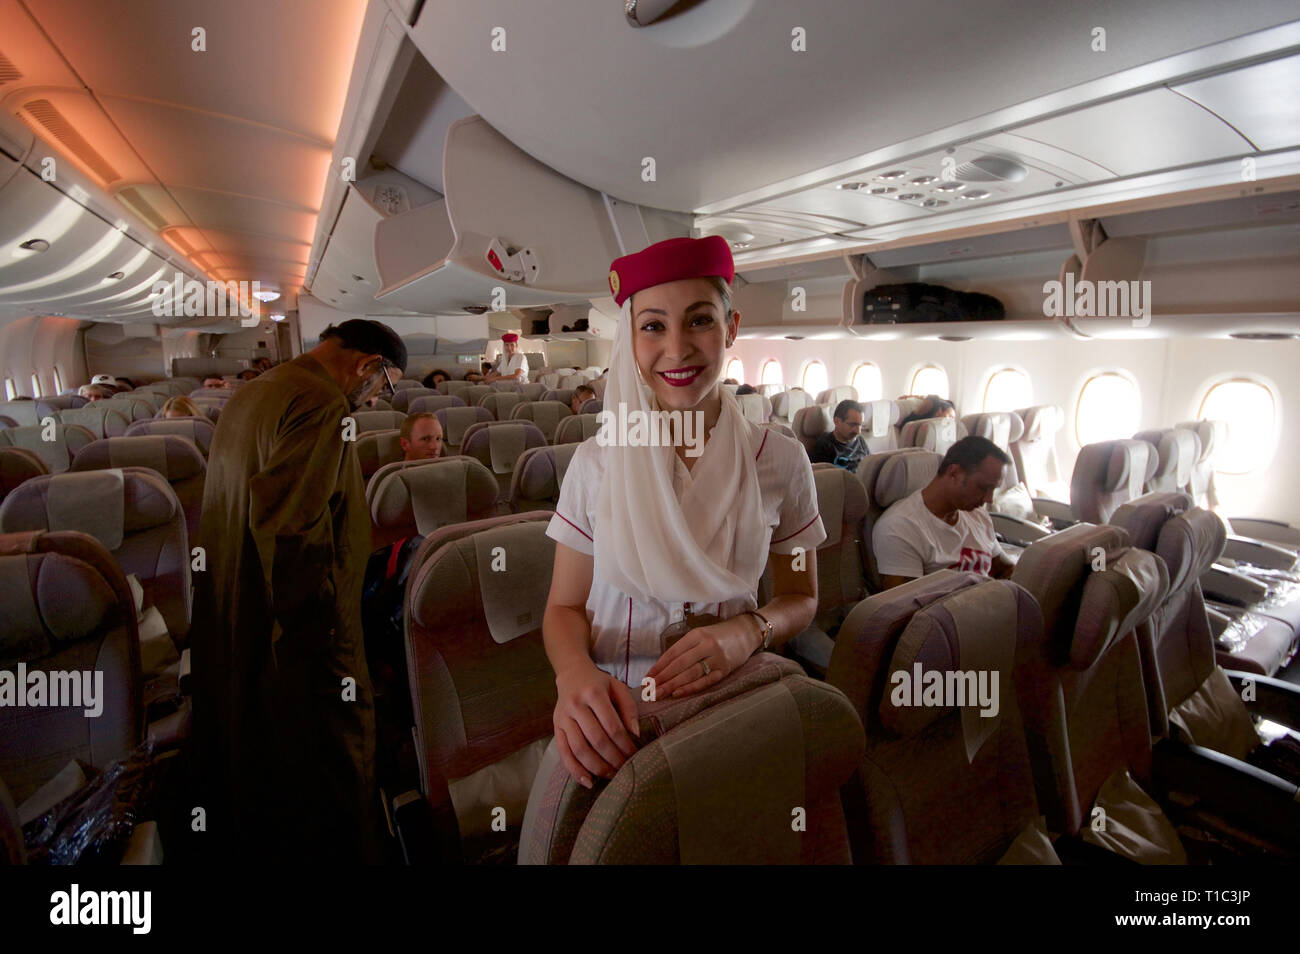 Dating Emirates cabine équipage